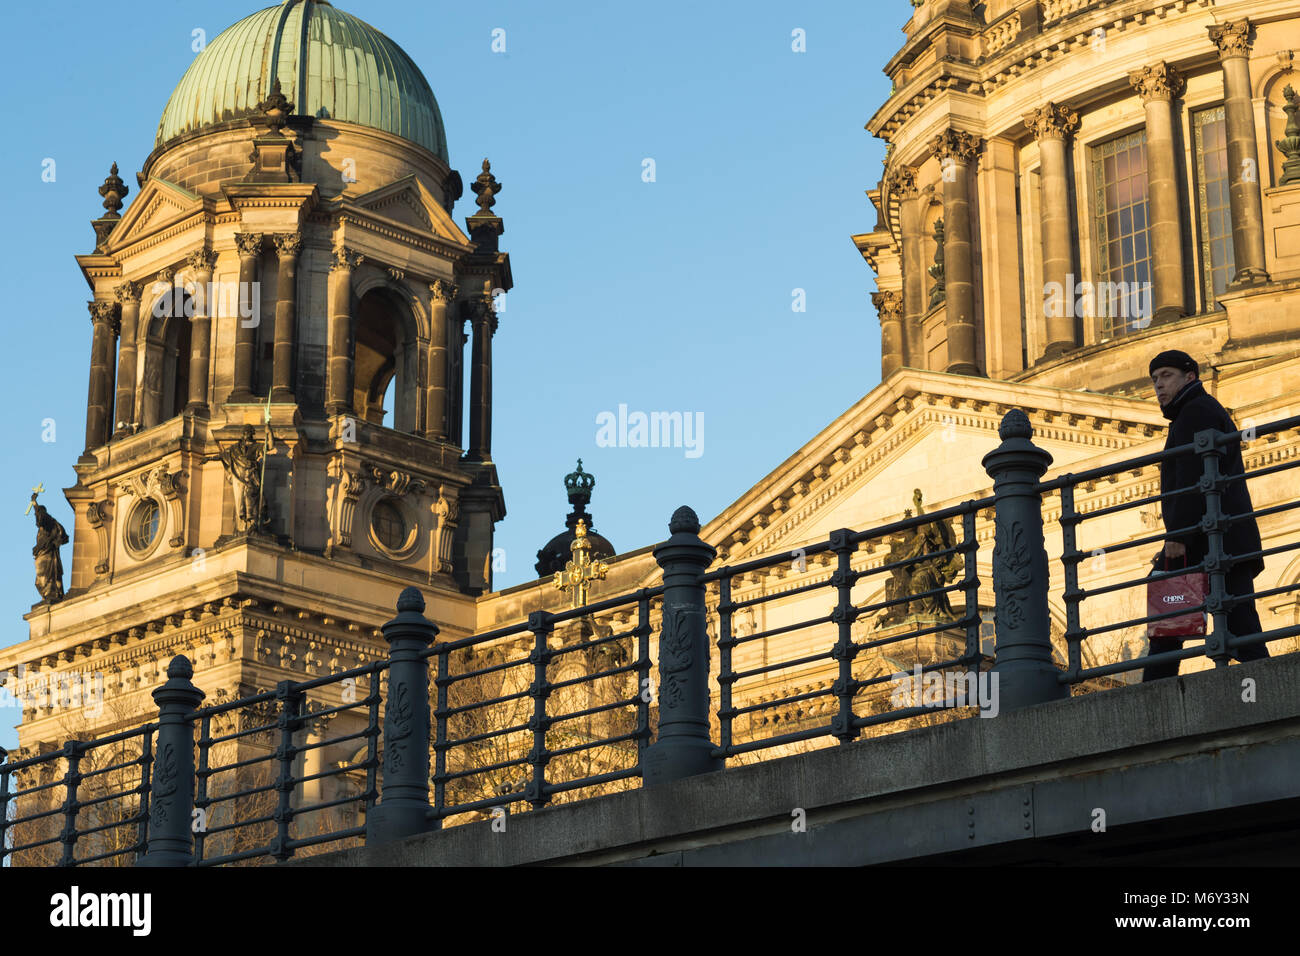 The Berliner Dom, Am Lustgarten, Mitte, Berlin, Germany - Stock Image